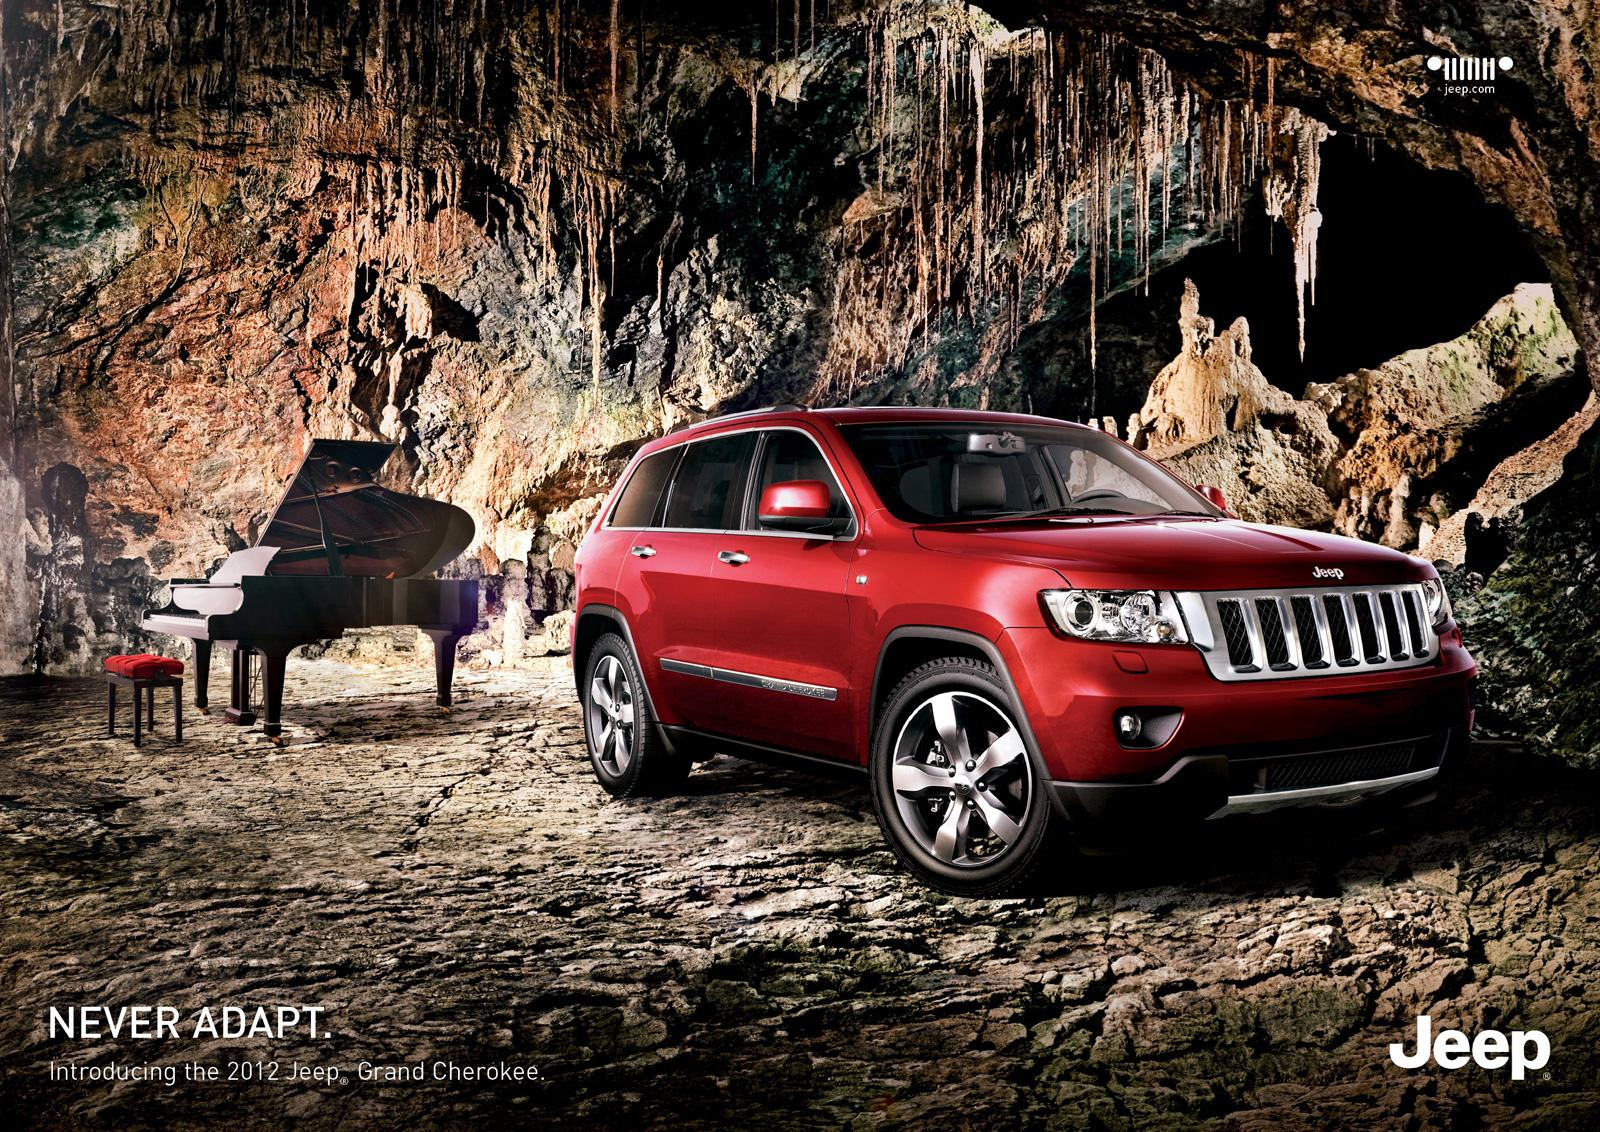 Jeep Print Ad -  Never Adapt, 2